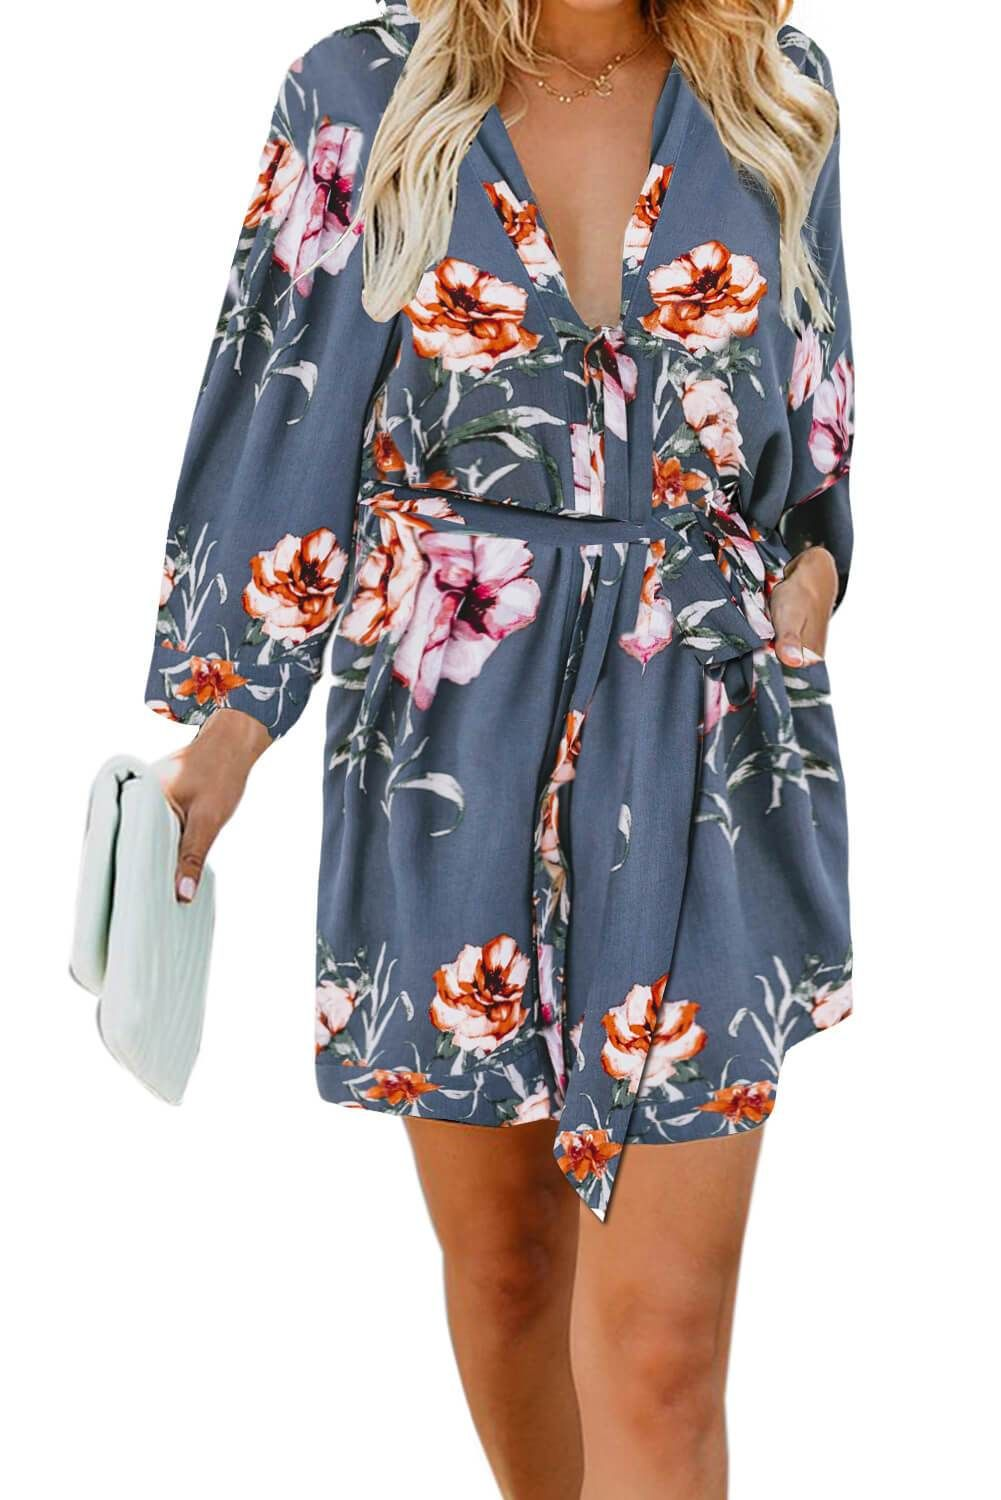 Blue Casual V Neck 3 4 Sleeve Floral Dress Floral Dress Casual Casual Short Sleeve Dress Summer Dresses With Sleeves [ 1500 x 1001 Pixel ]